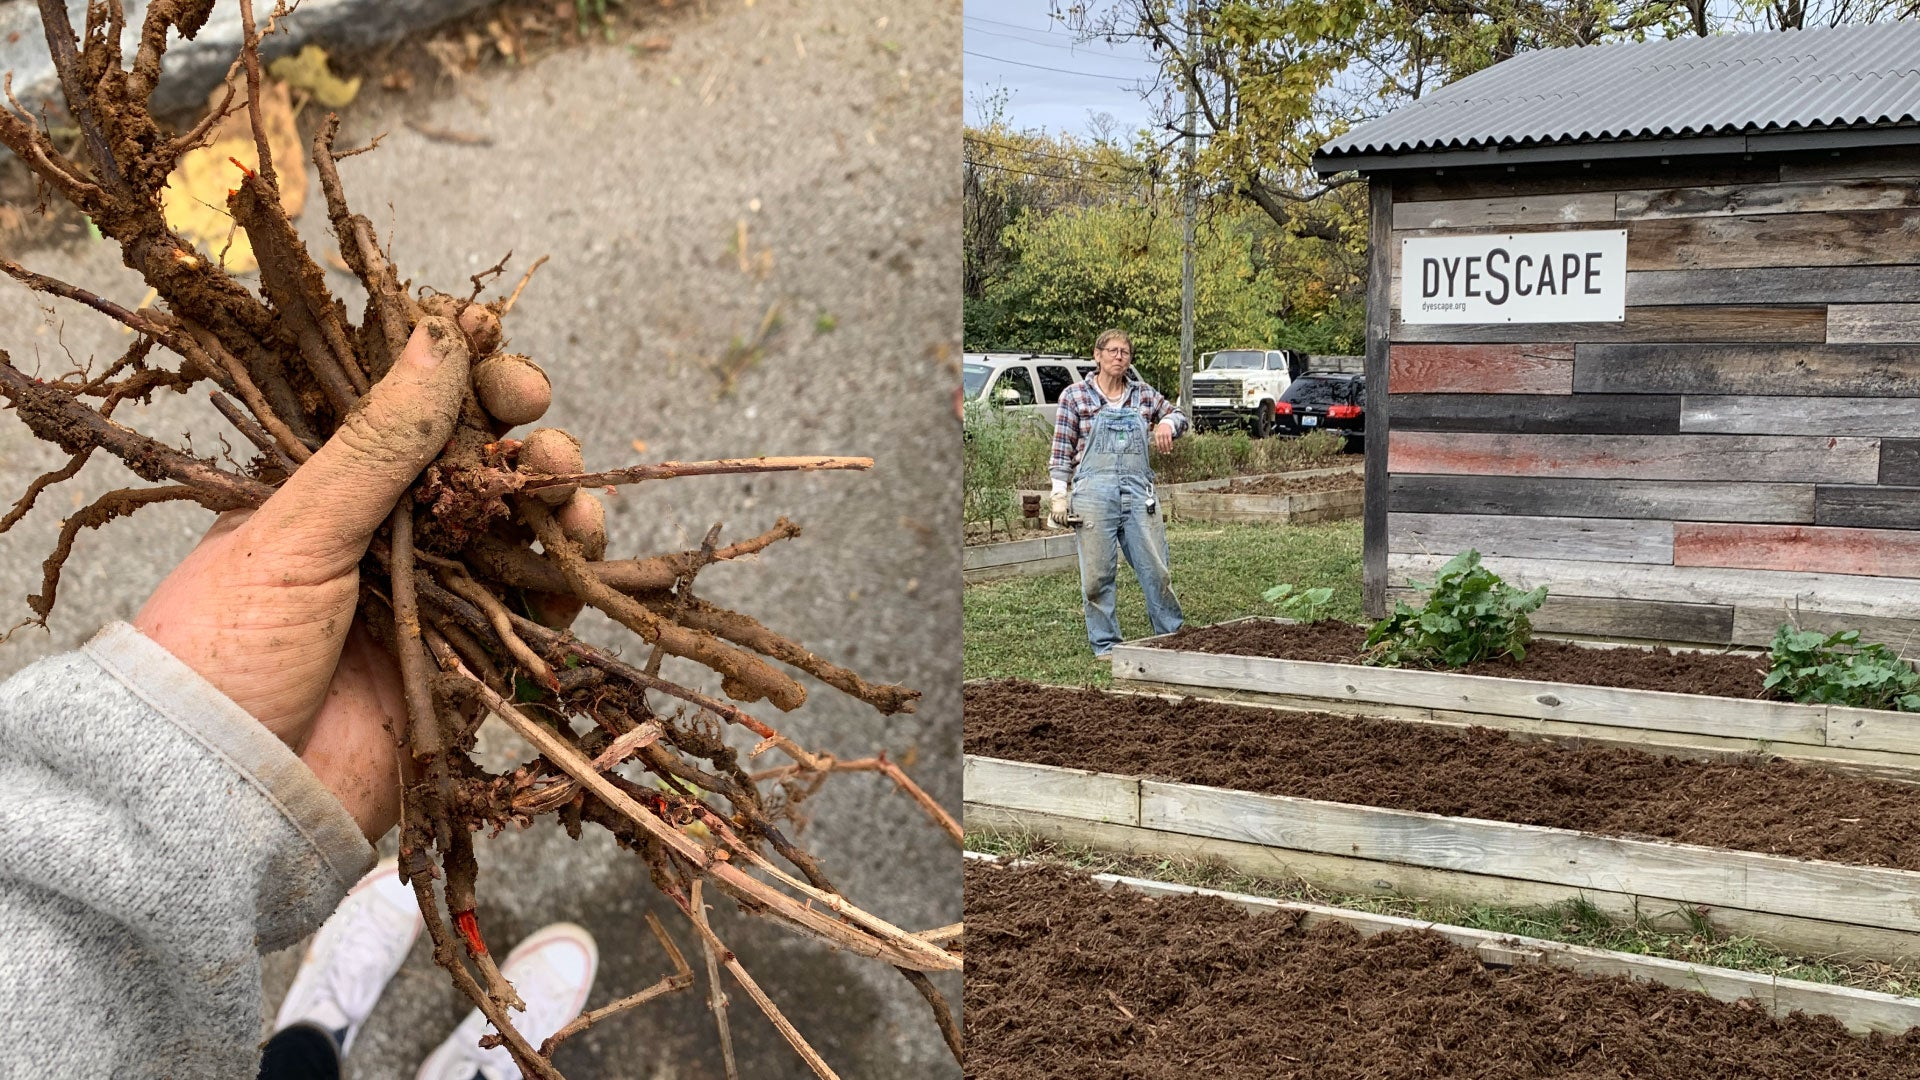 madder root harvested in Louisville, KY dyeScape garden